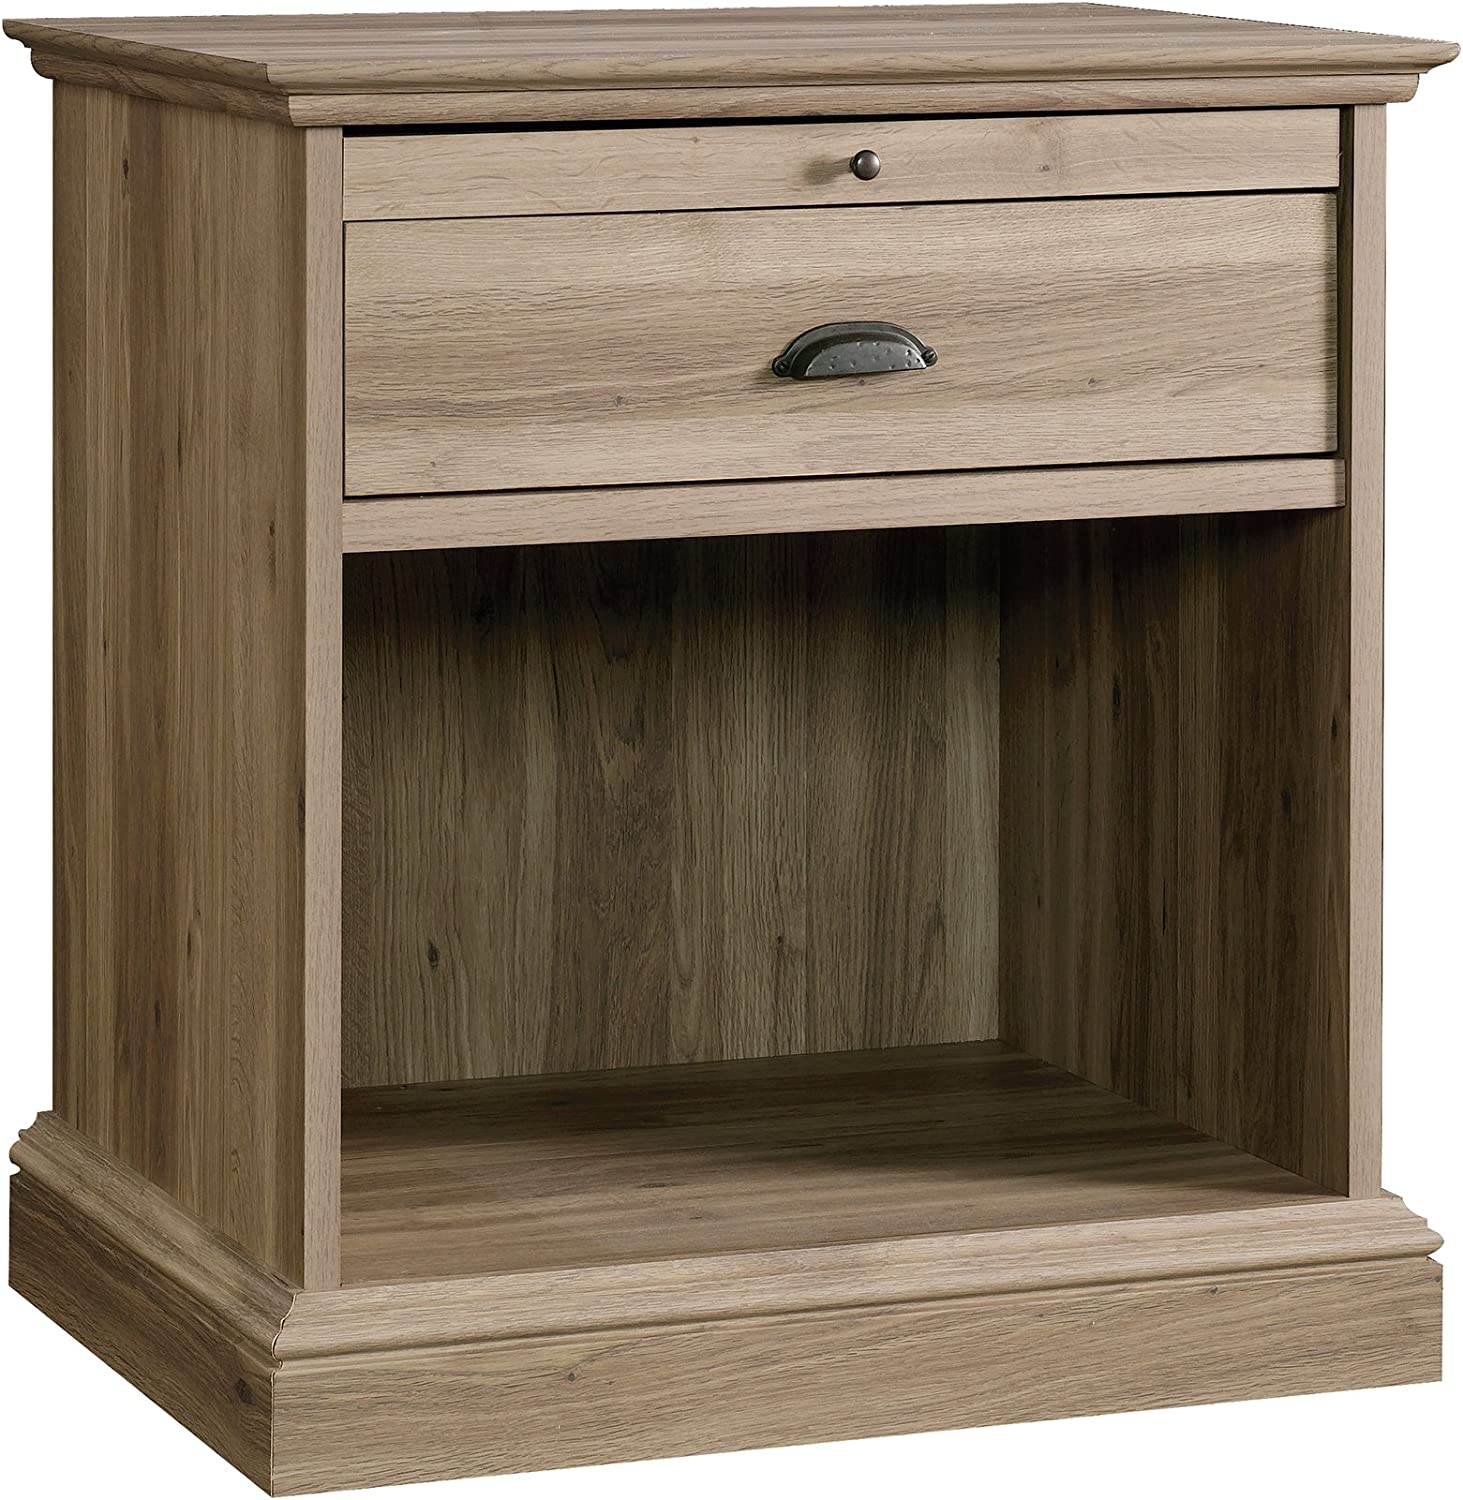 Sauder Barrister Lane Night Stand, Salt Oak finish